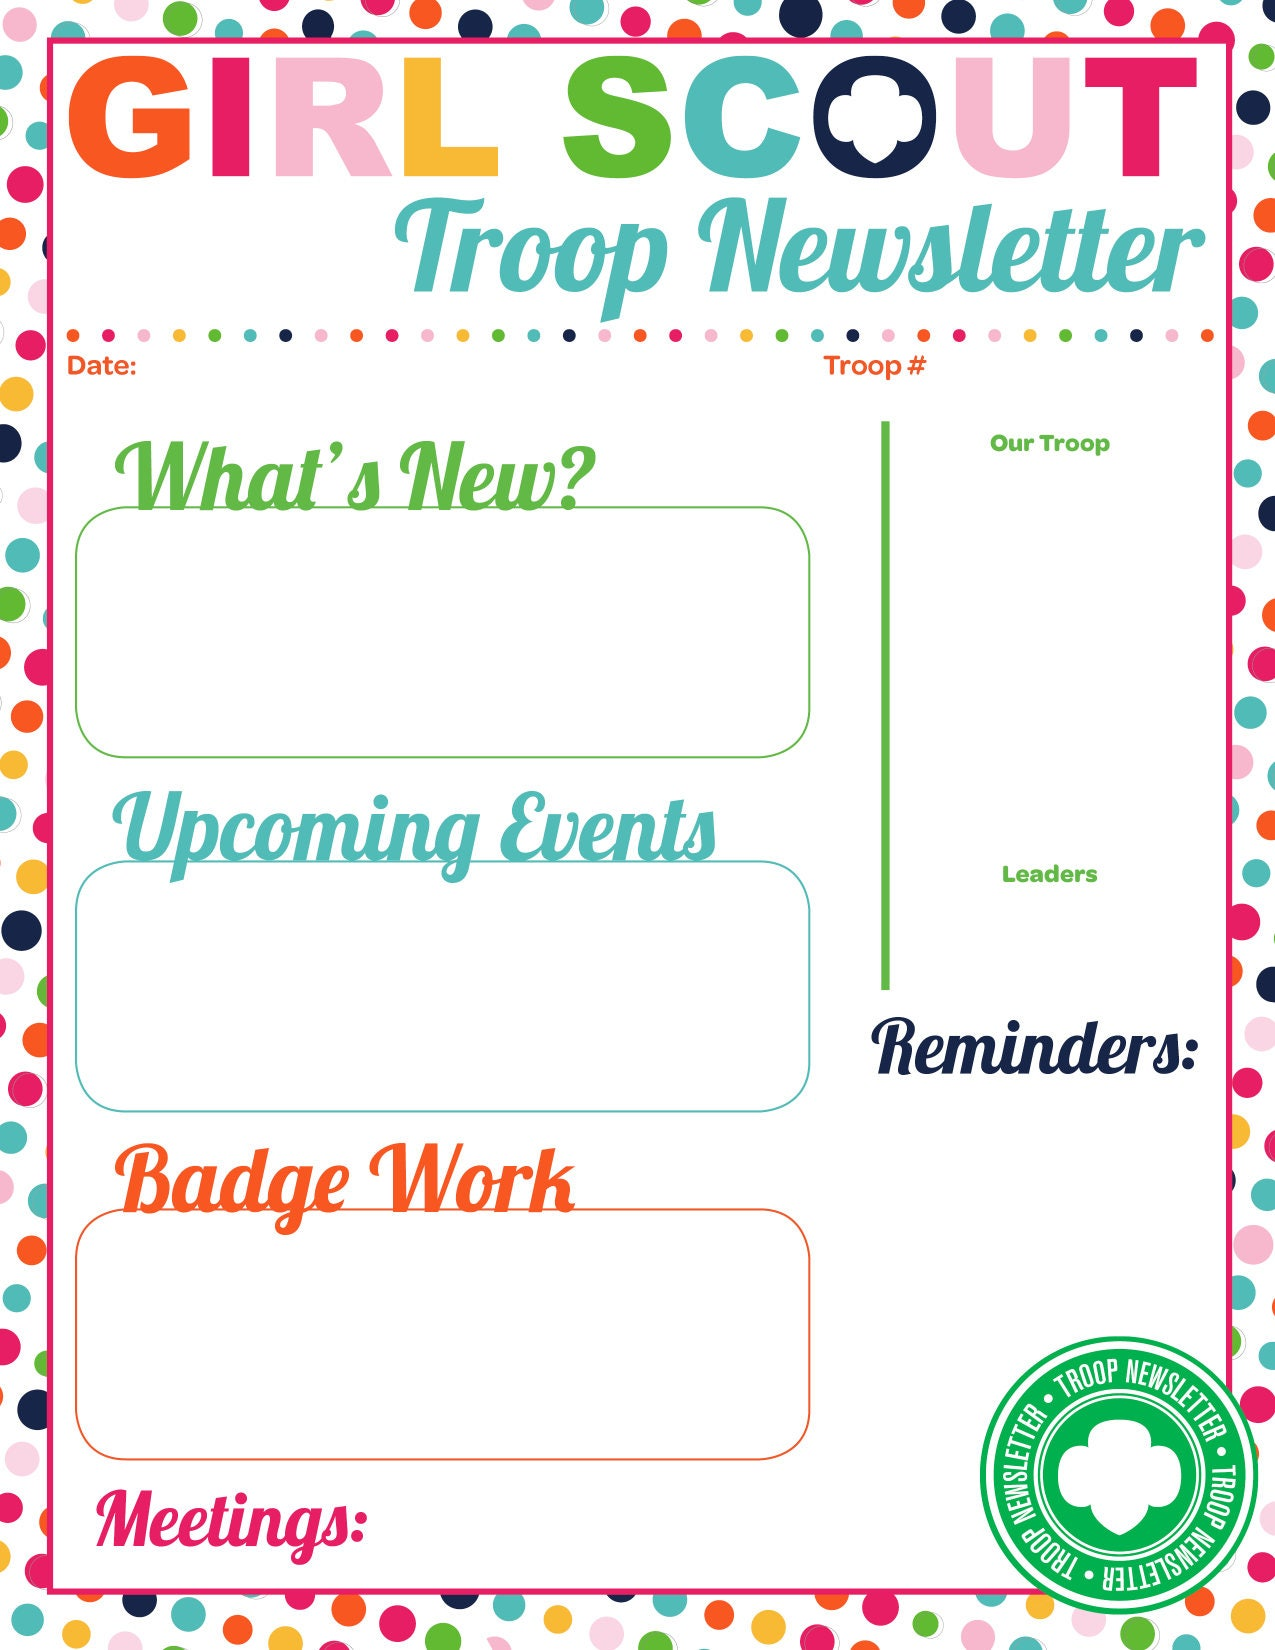 scout certificates template - girl scouts troop newsletter template iamgirlscouts